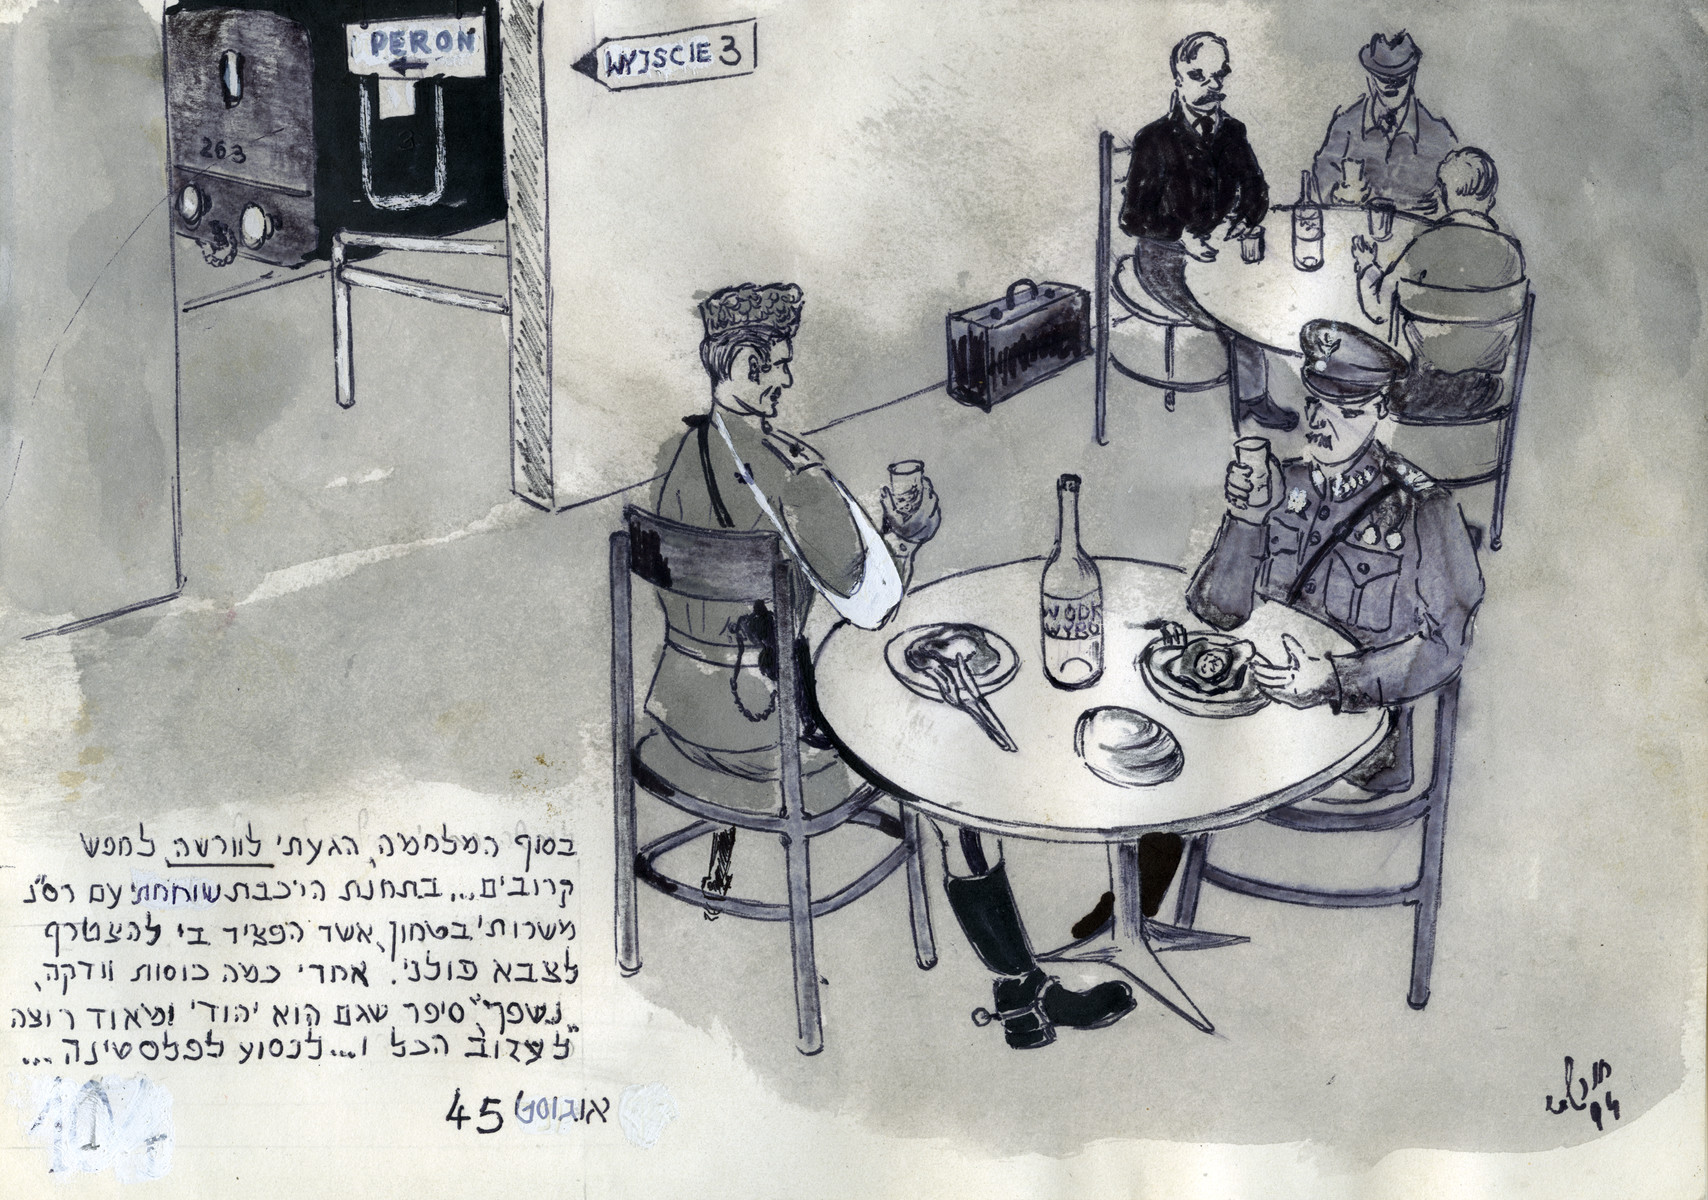 Page of a pictoral memoir drawn by the donor documenting his experiences after the Holocaust showing him talking to a Polish officer after arriving in Warsaw.  After several glasses of vodka, the officer confesses that he is also a Jew and wants to immigrate to Palestine.